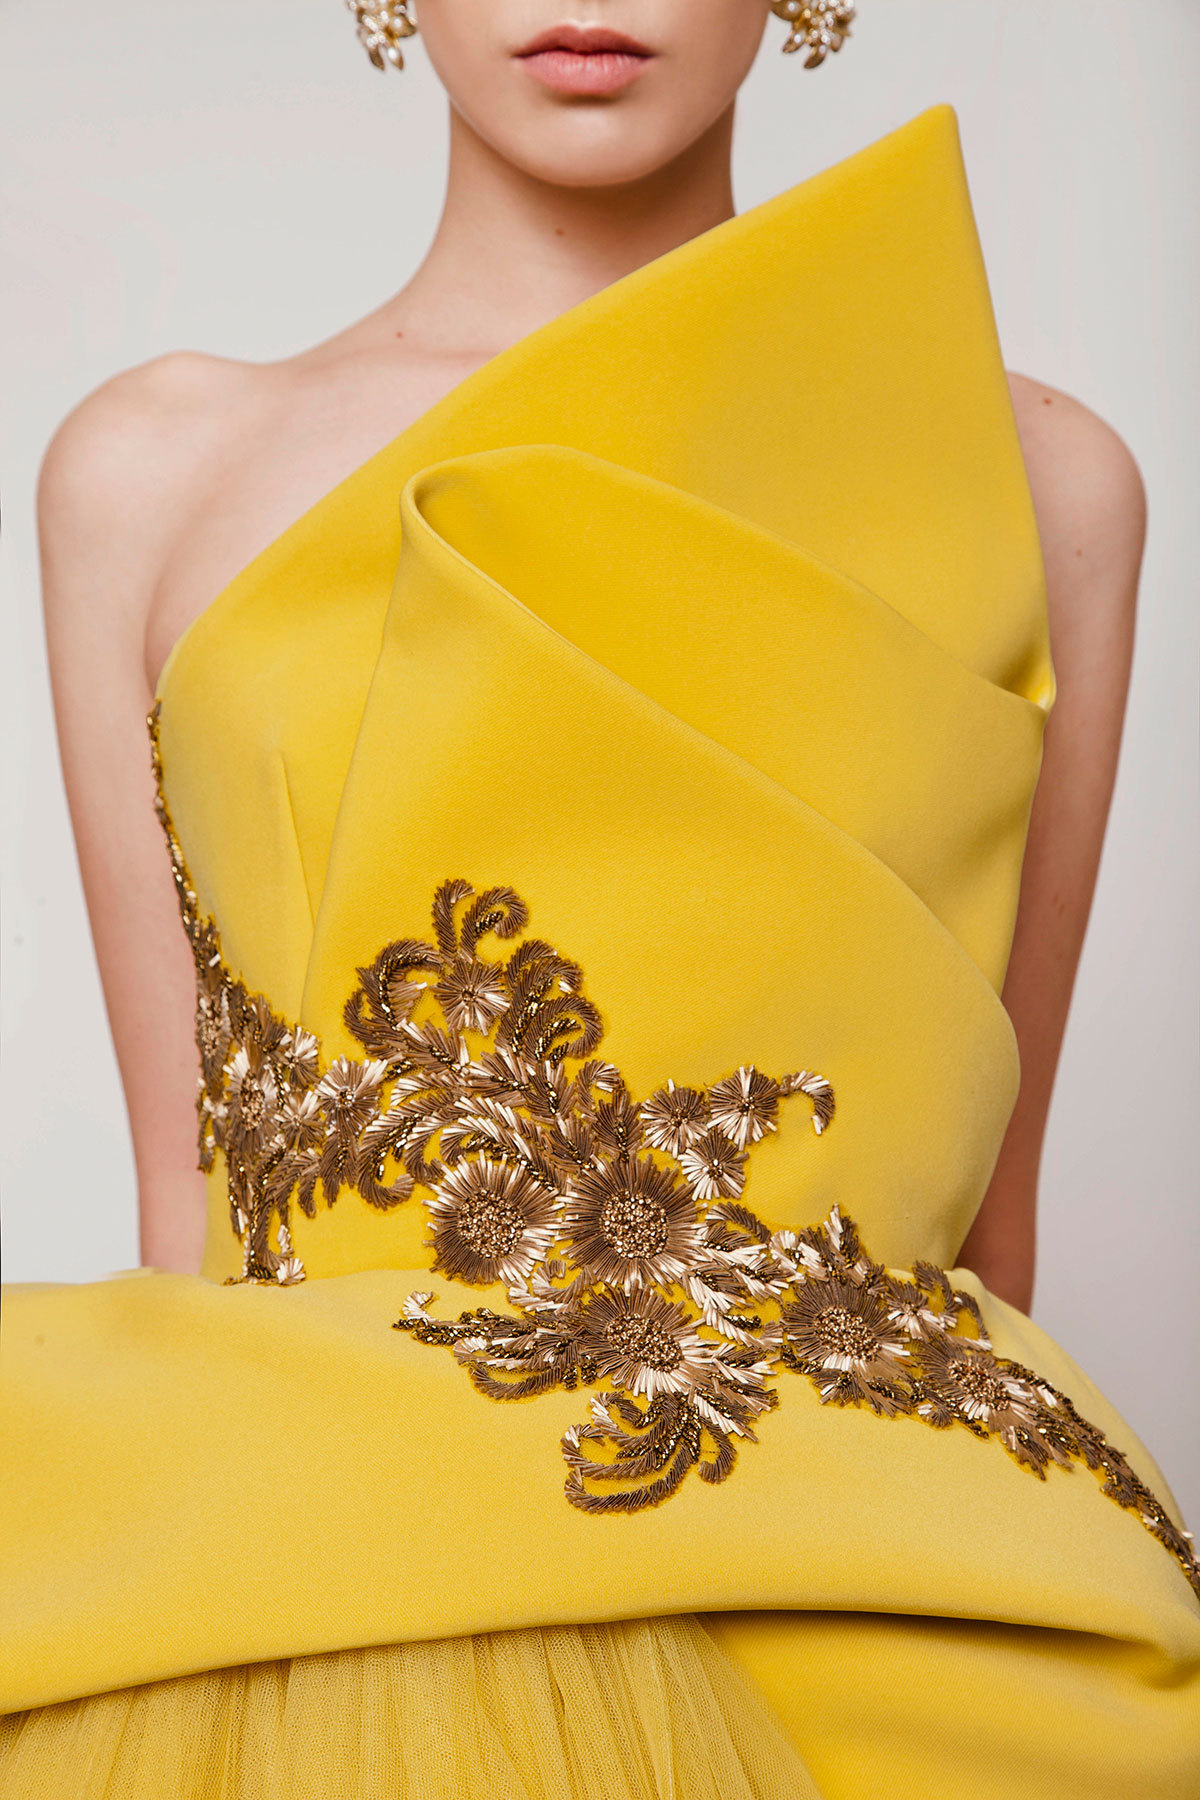 Azzi & Osta| Spring/Summer 2015 Details #azzi & osta #fashion#haute couture#gowns#style